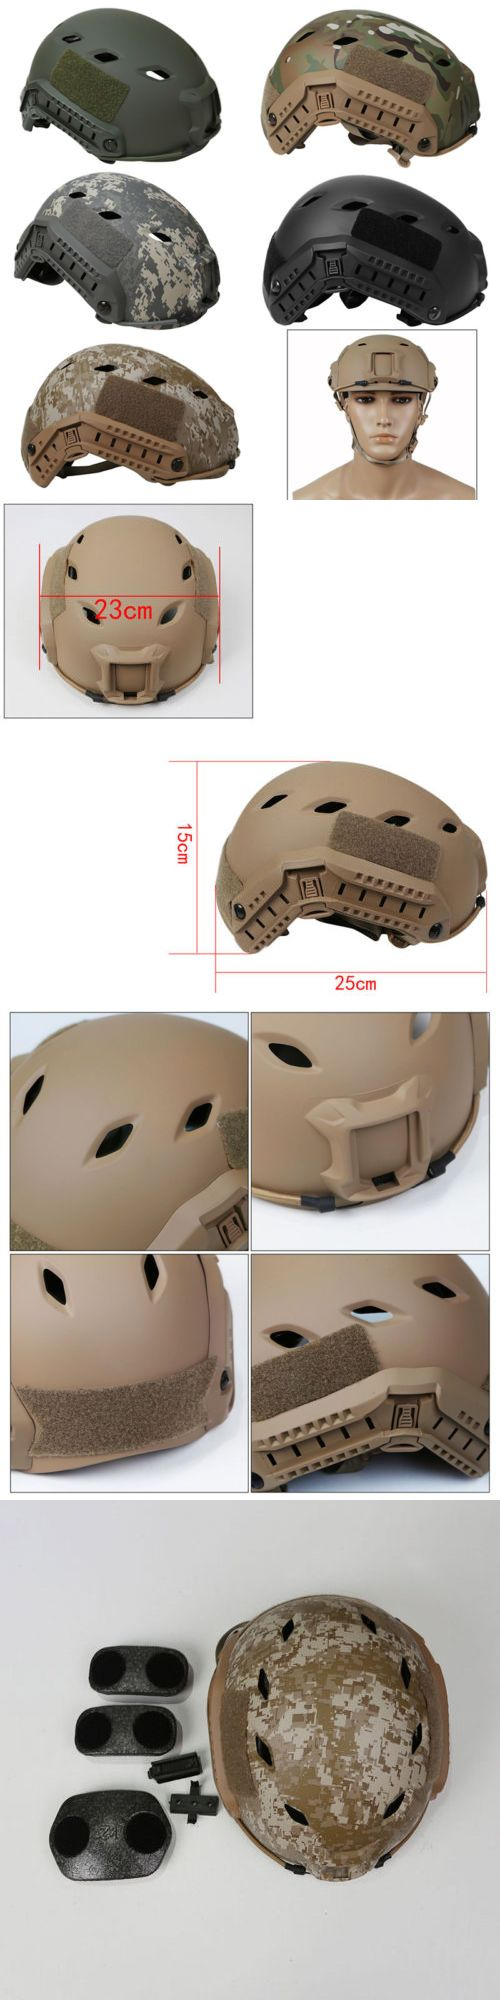 Hats and Headwear 177892: Outdoor Airsoft Military Tactical Combat Helmet Fast Bj Navy Style Adjustable -> BUY IT NOW ONLY: $66.45 on eBay!